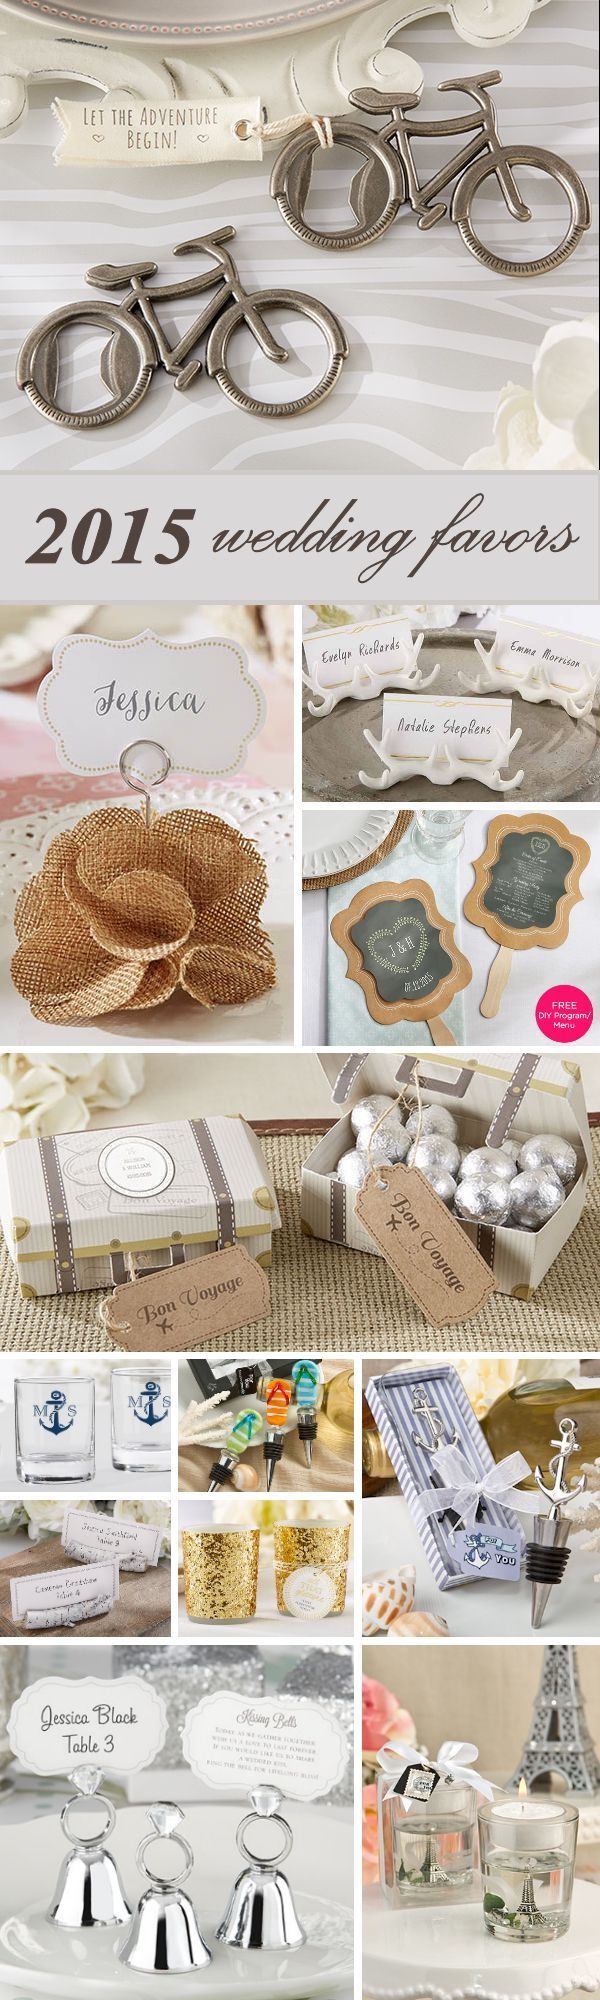 Now Trending - the 20 Most Popular New Wedding Favors for 2015.   Give favors your guests will love!